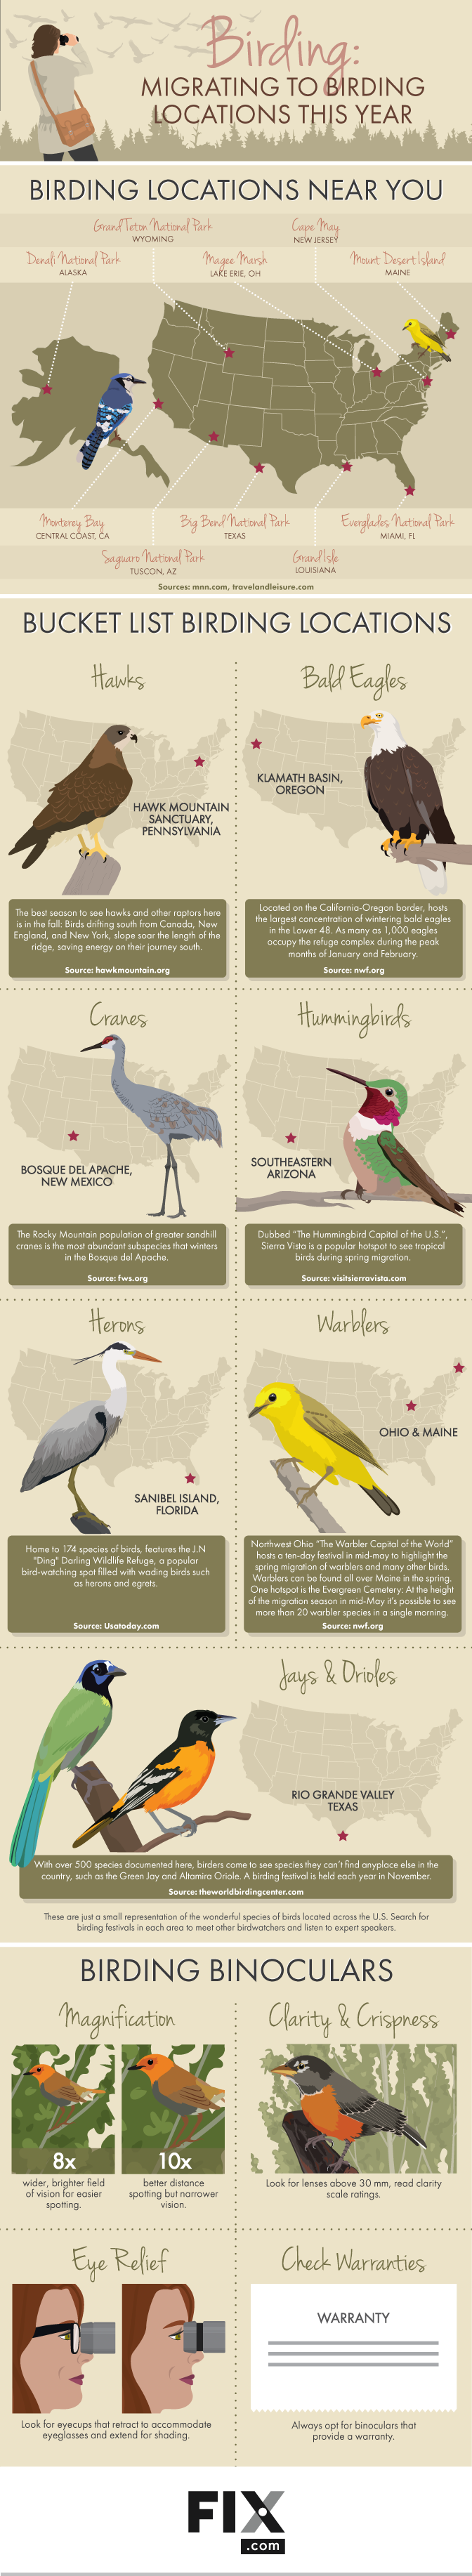 Birding: Migrating to Birding Locations This Year #Infographic